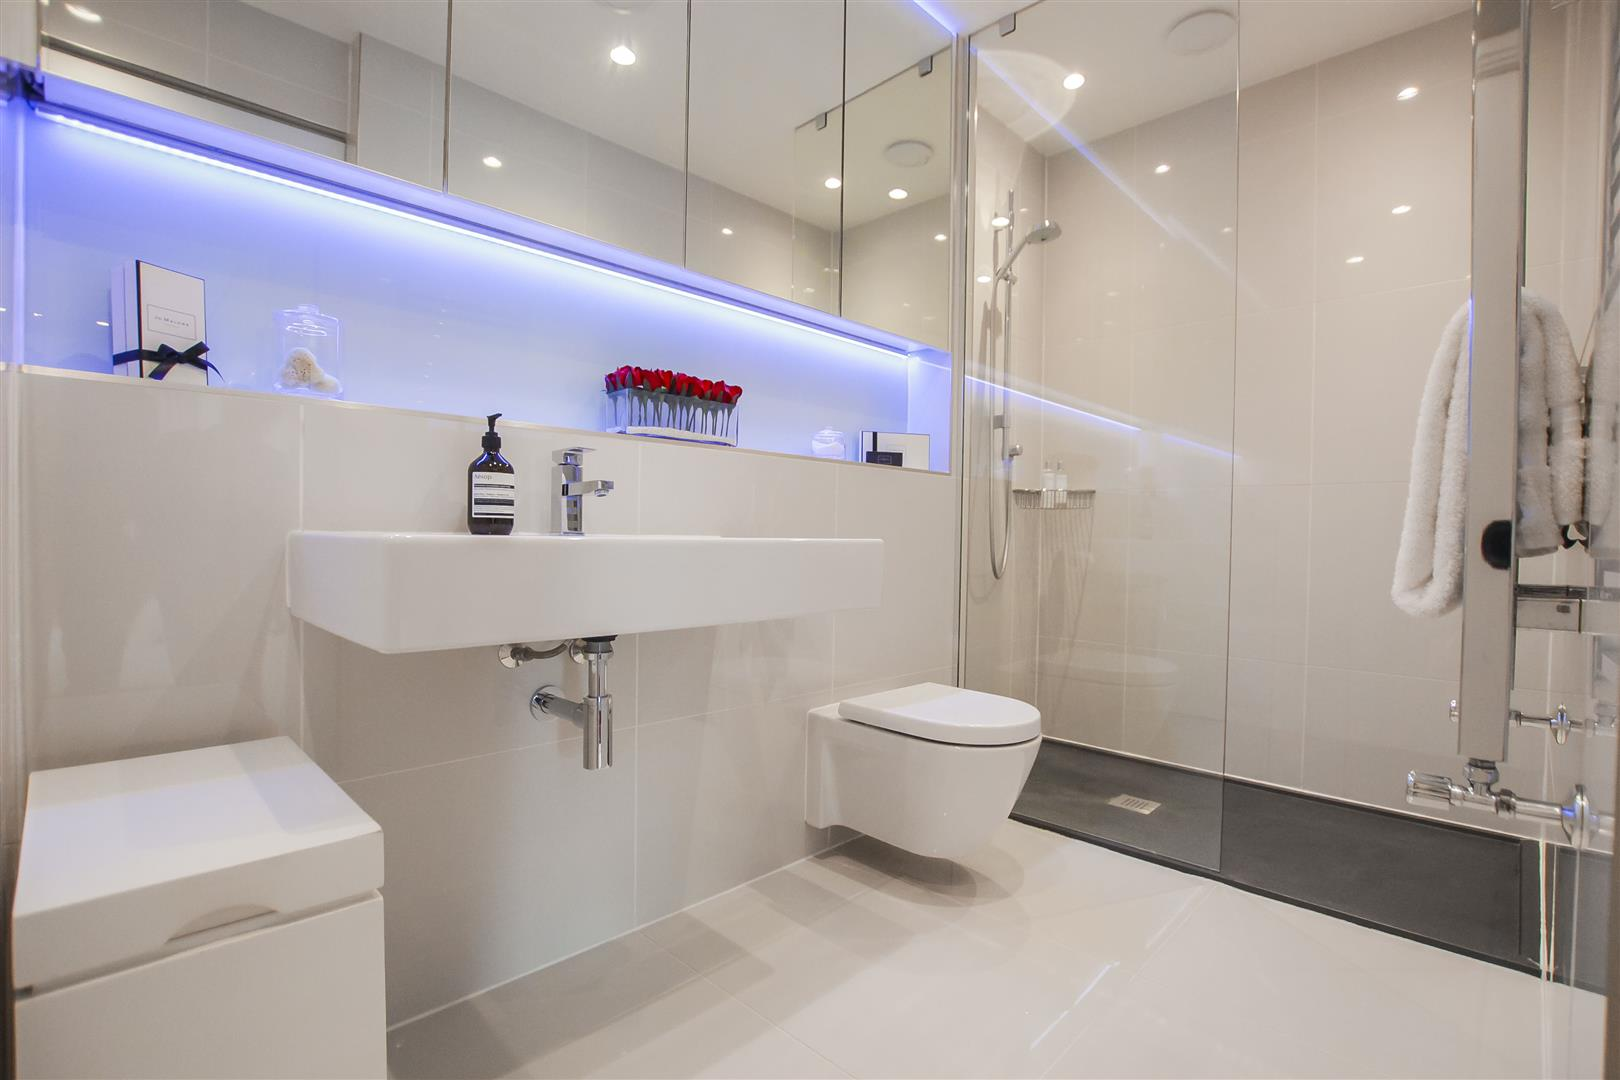 2 Bedroom Apartment For Sale - Image 7